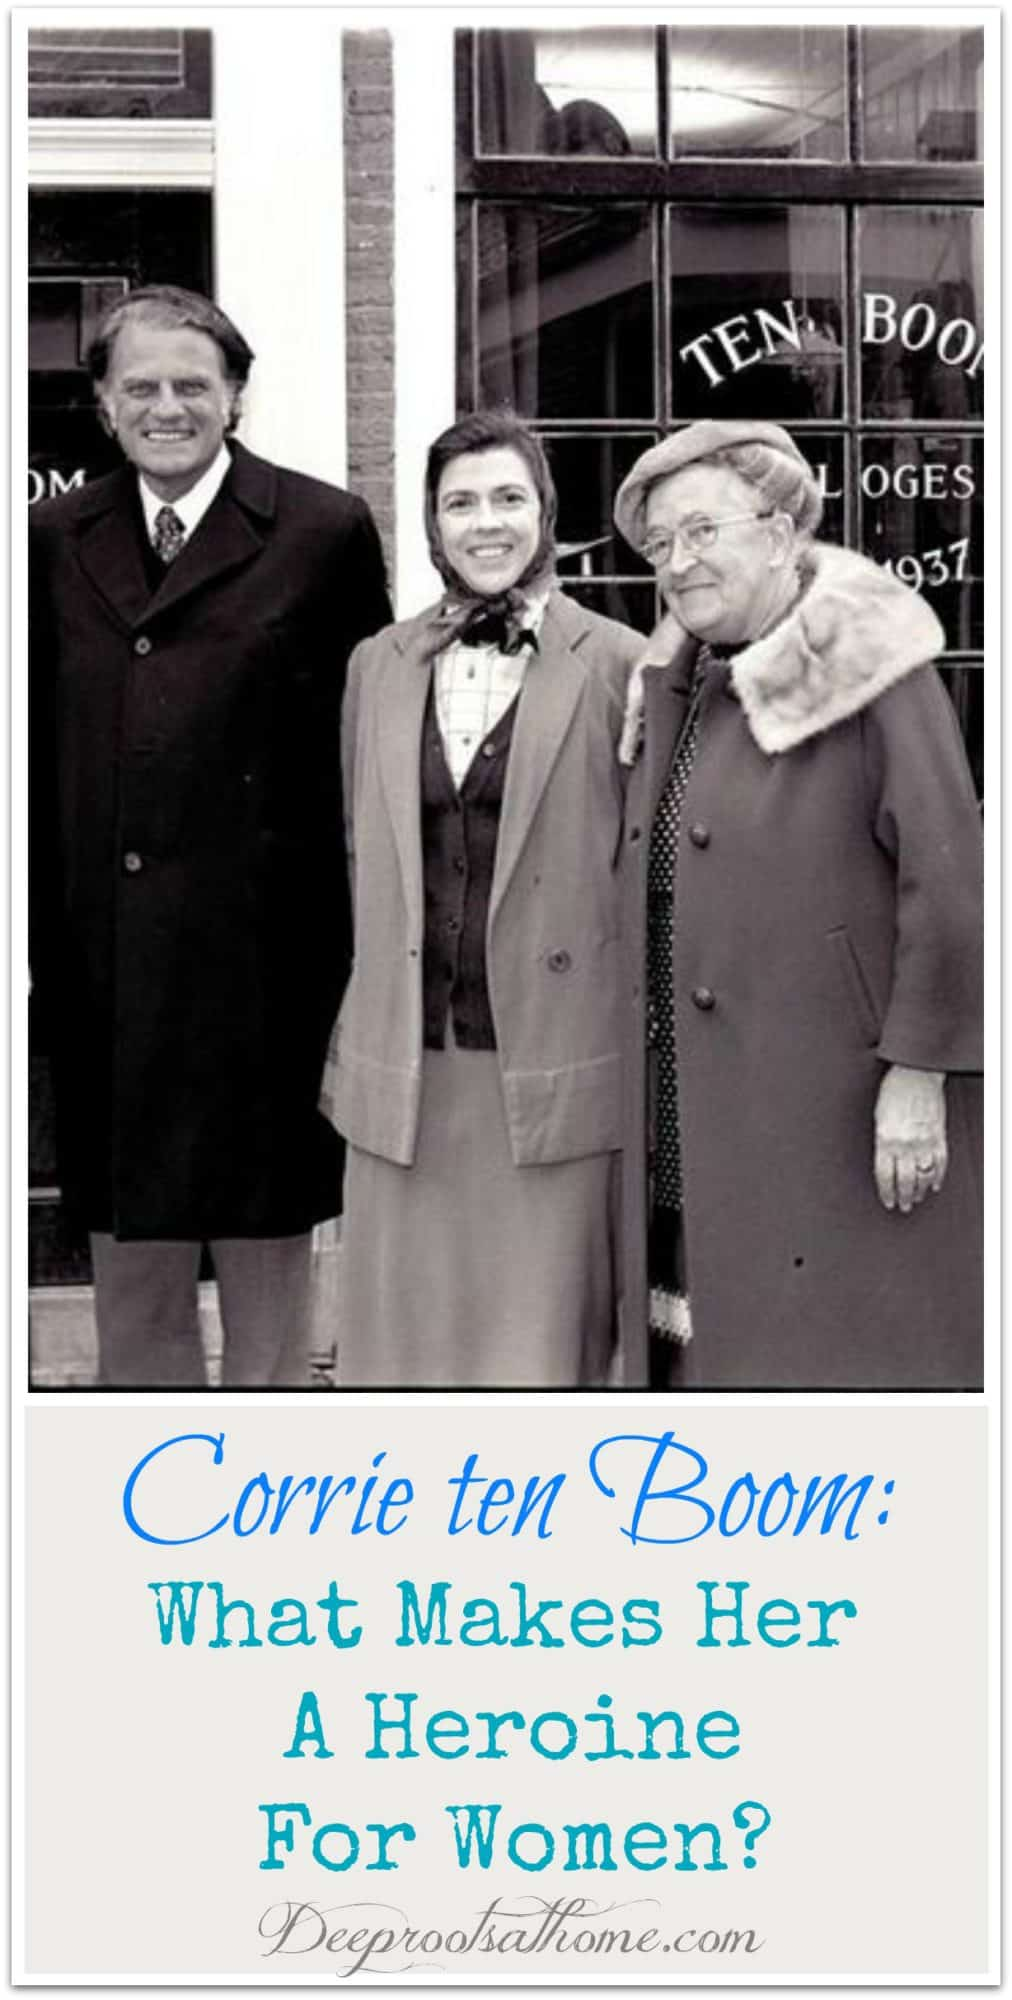 Corrie ten Boom: What Makes Her A Heroine For Women? Billy Graham, Corrie and friends in front of the ten Boom Museum.